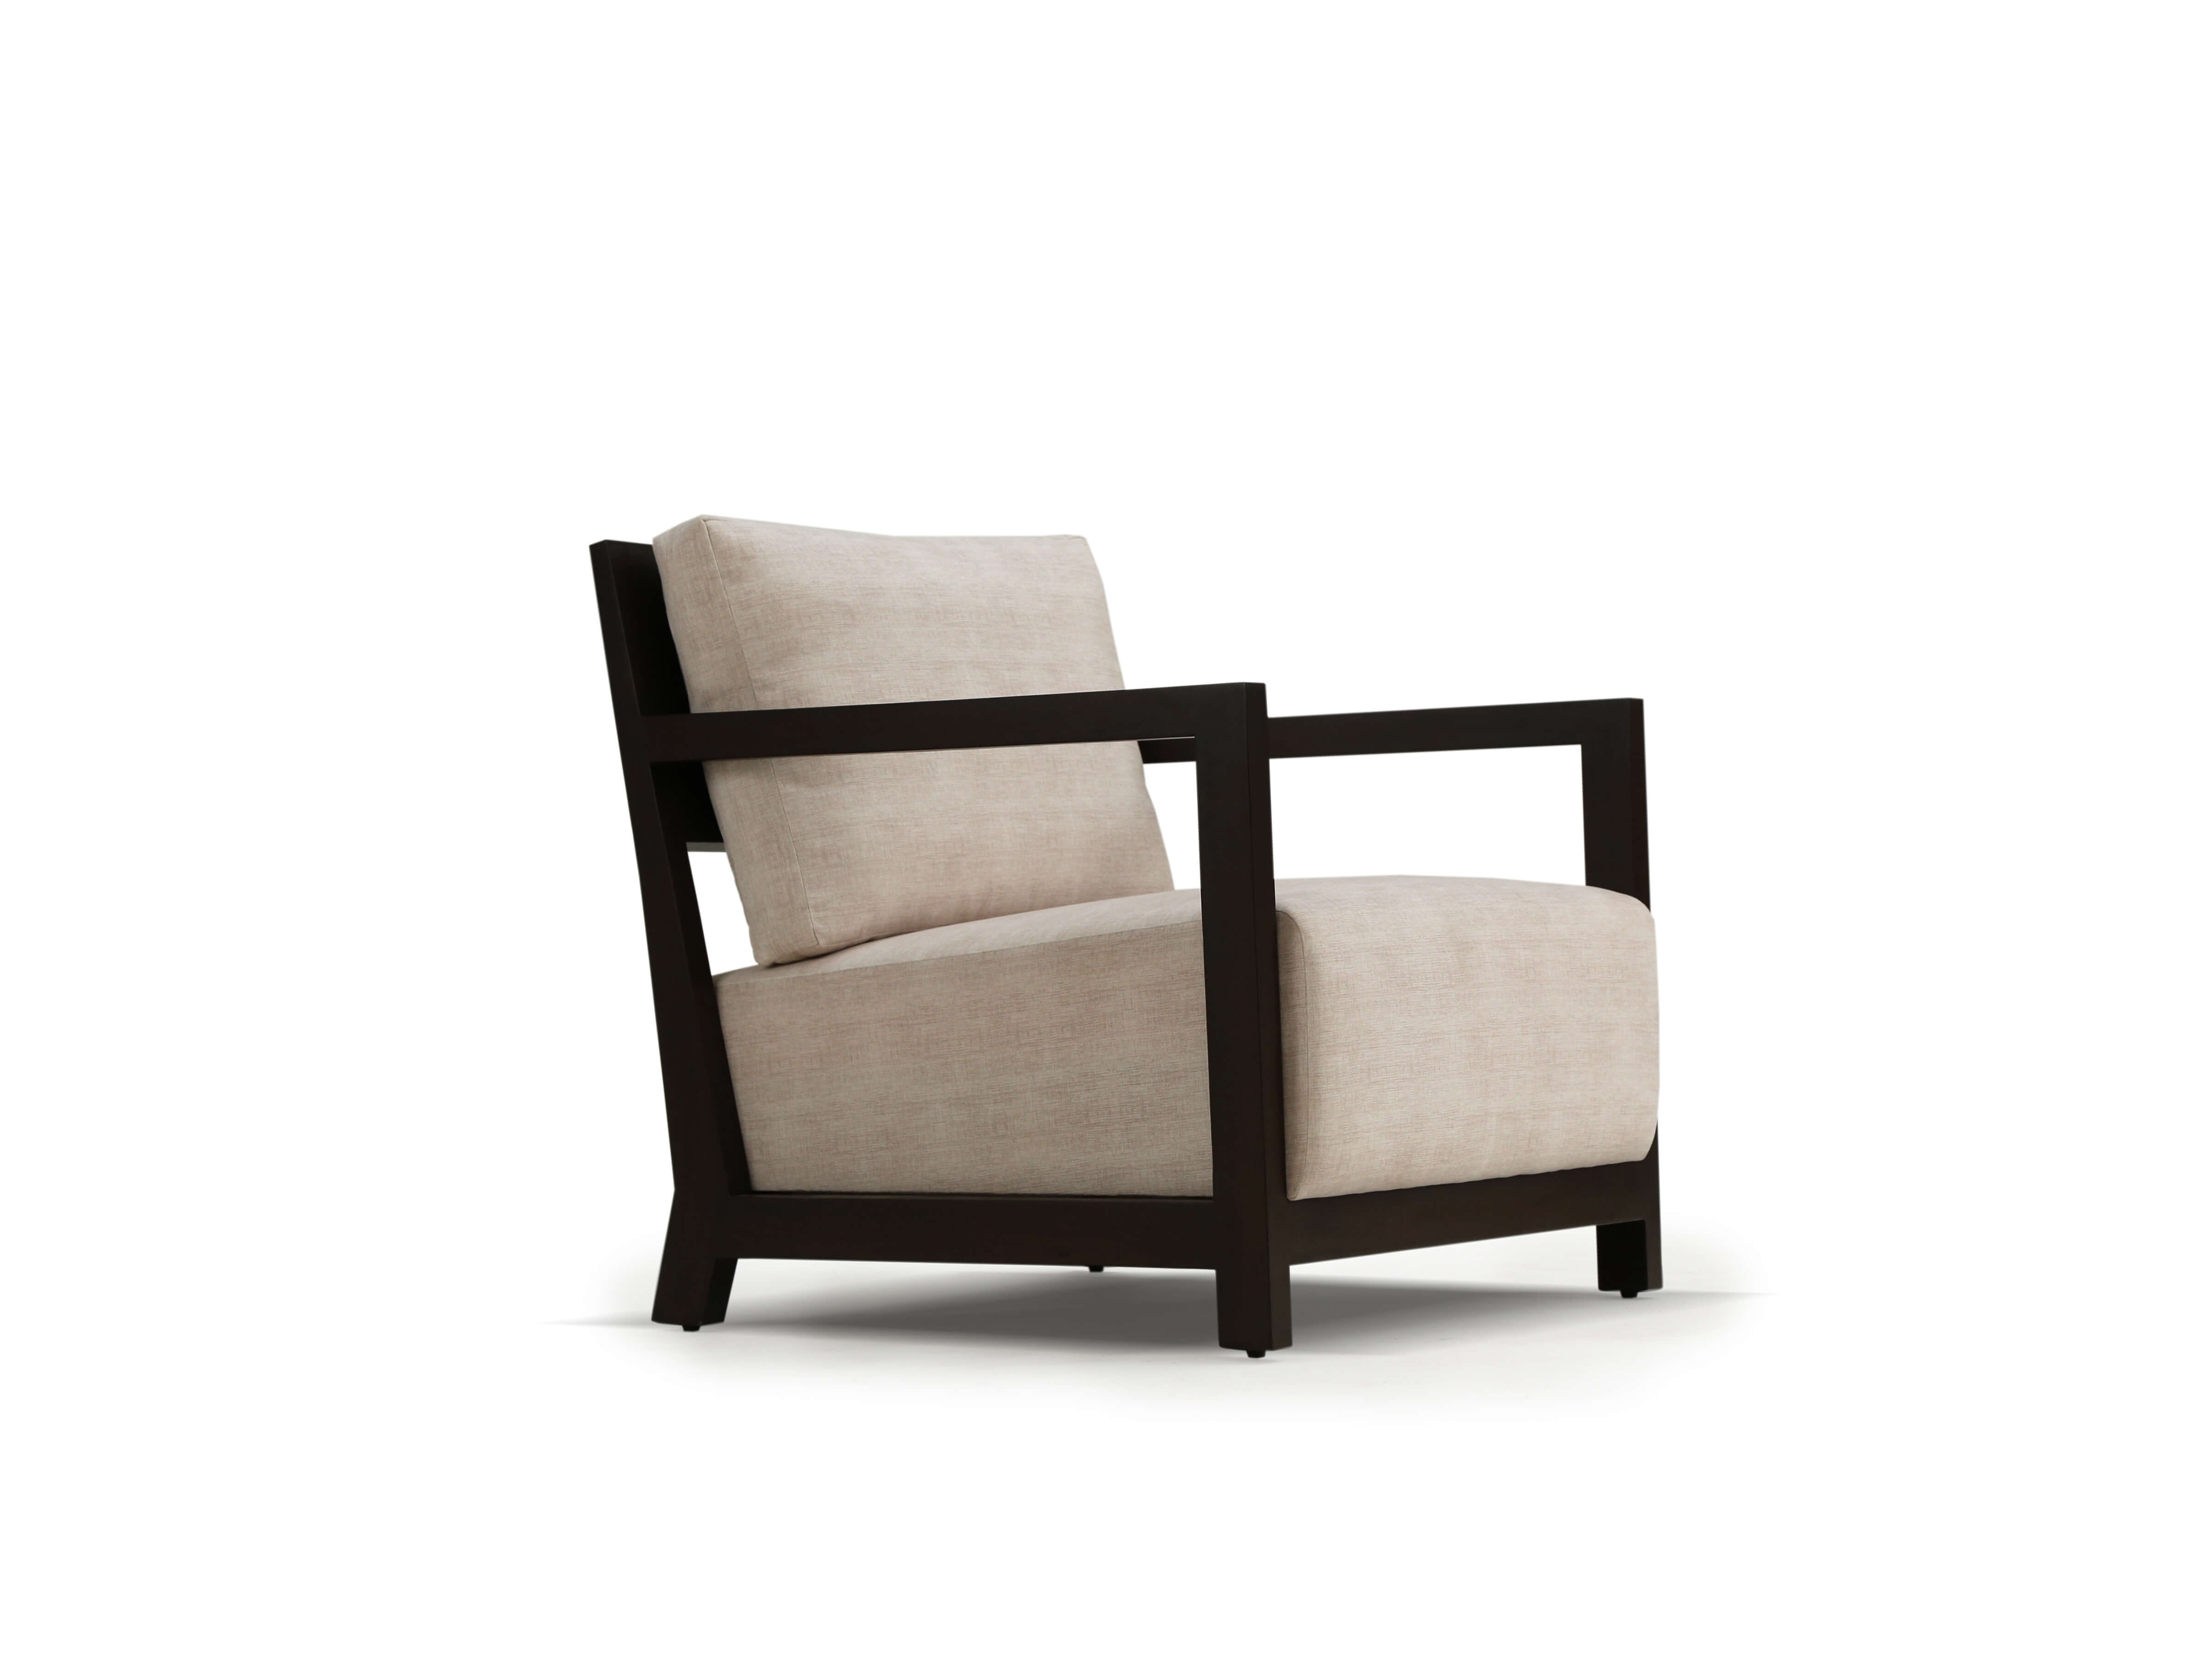 Contra arm chair (1)